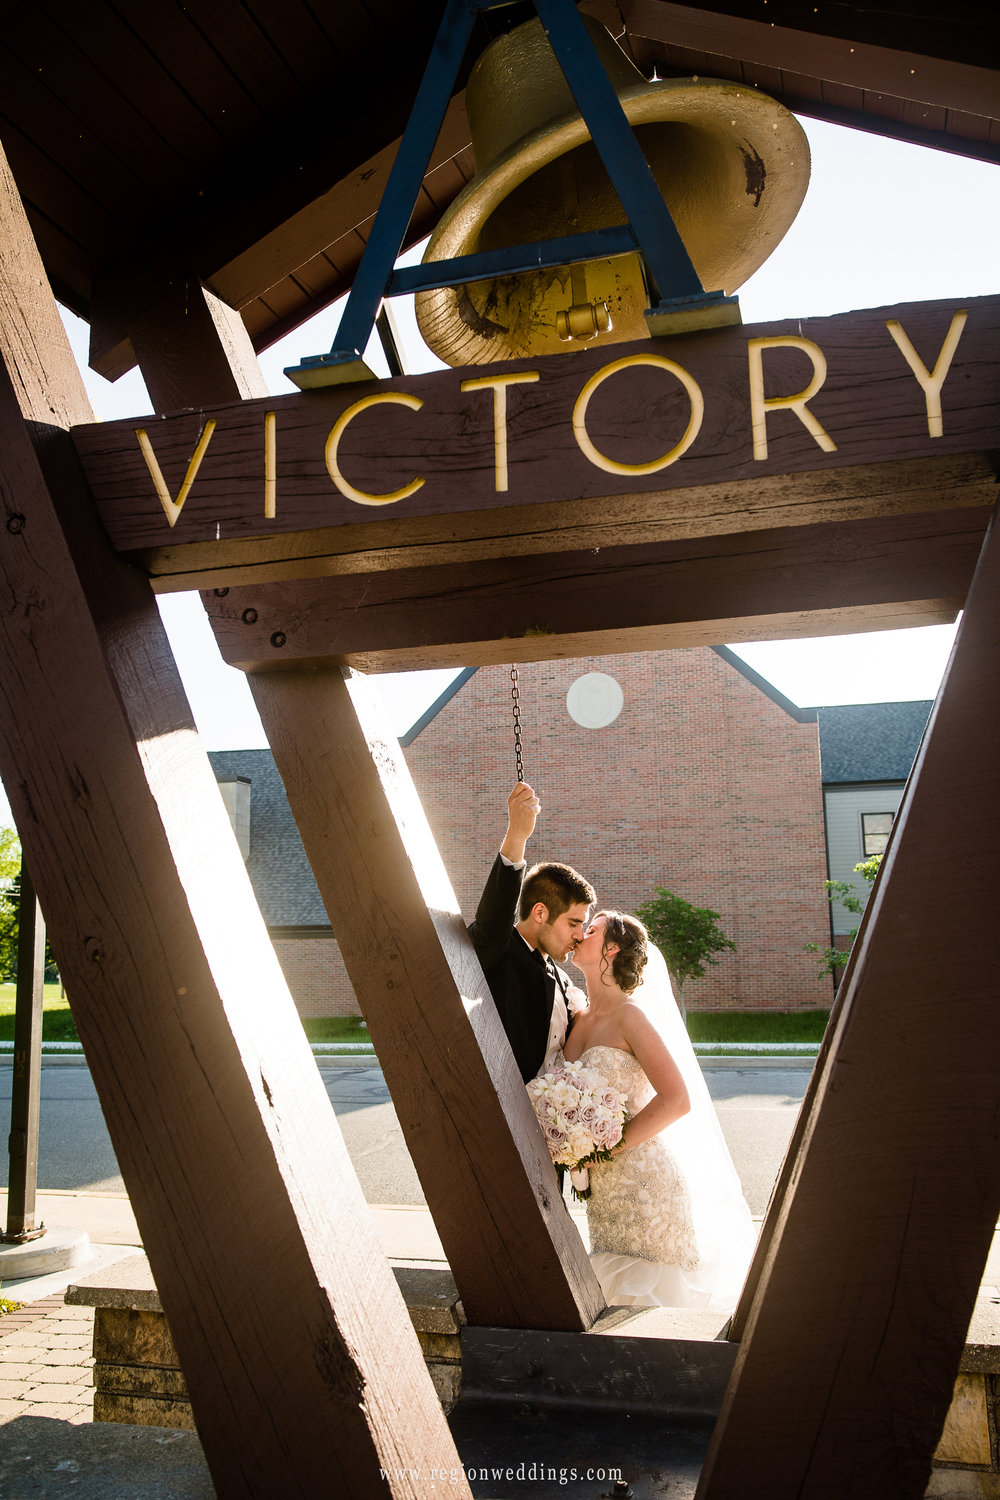 The Victory Bell outside the Valparaiso University football stadium.